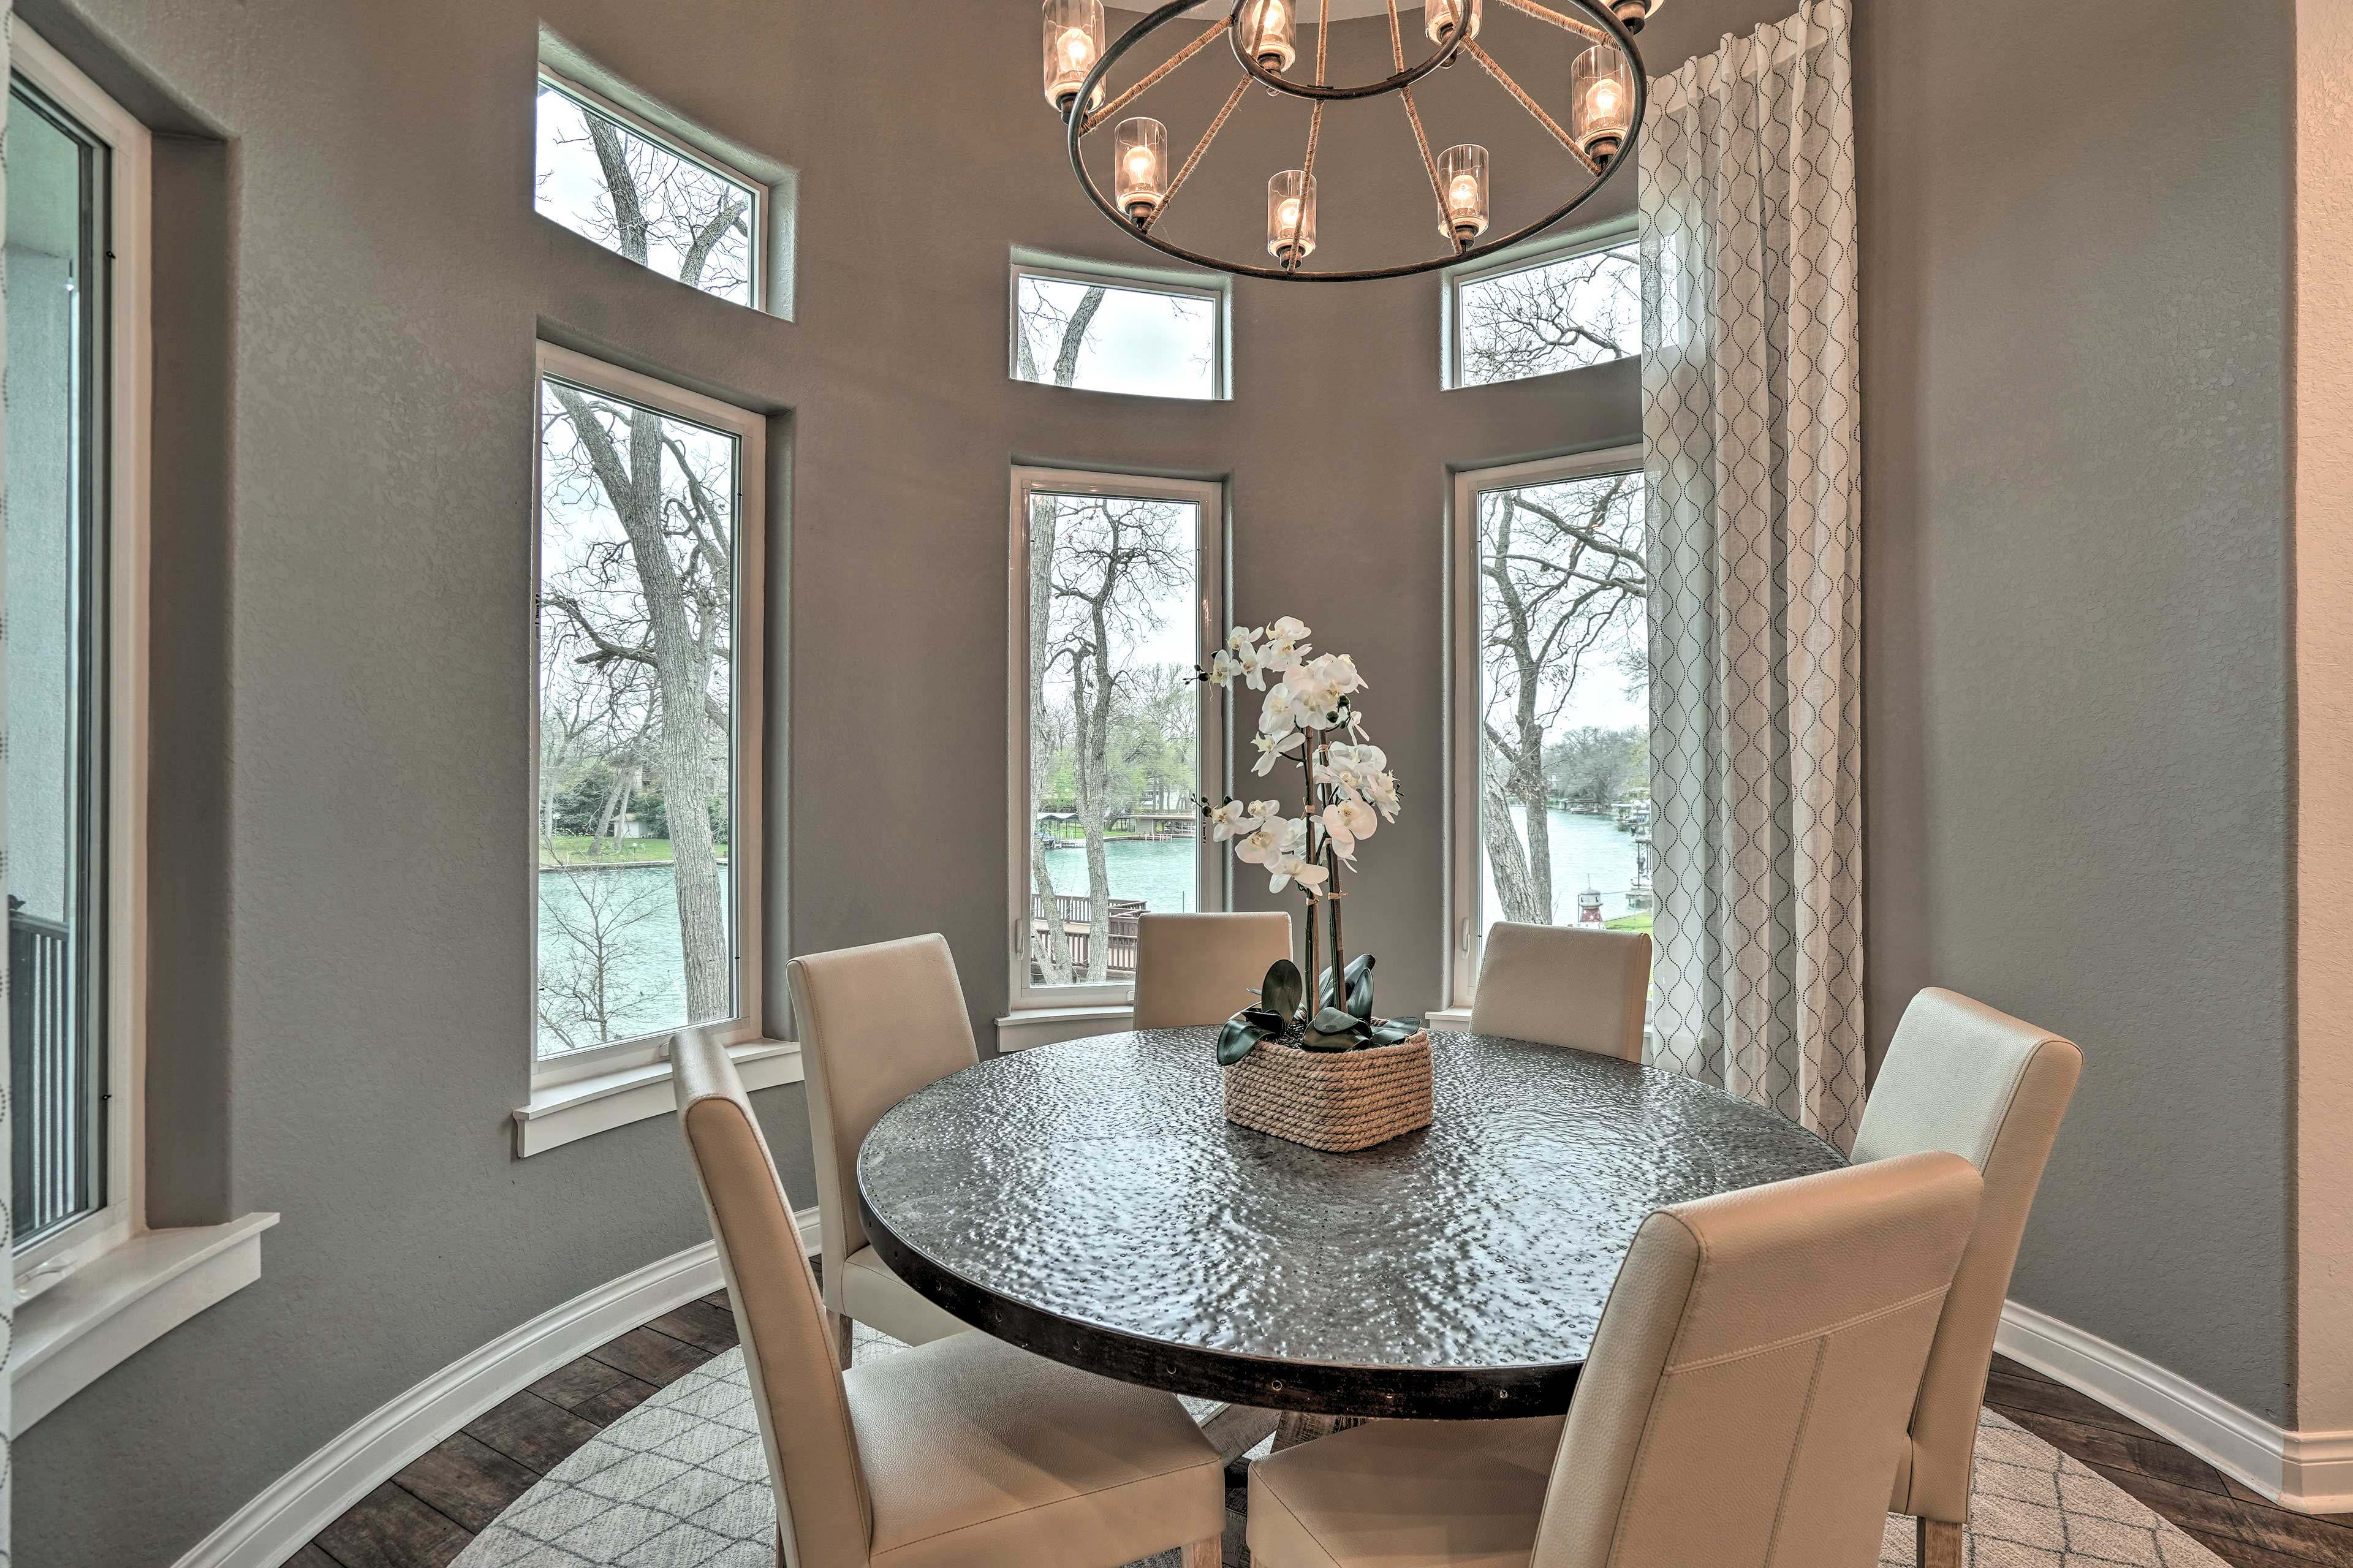 Savor breakfast in this kitchen nook with views of the water.